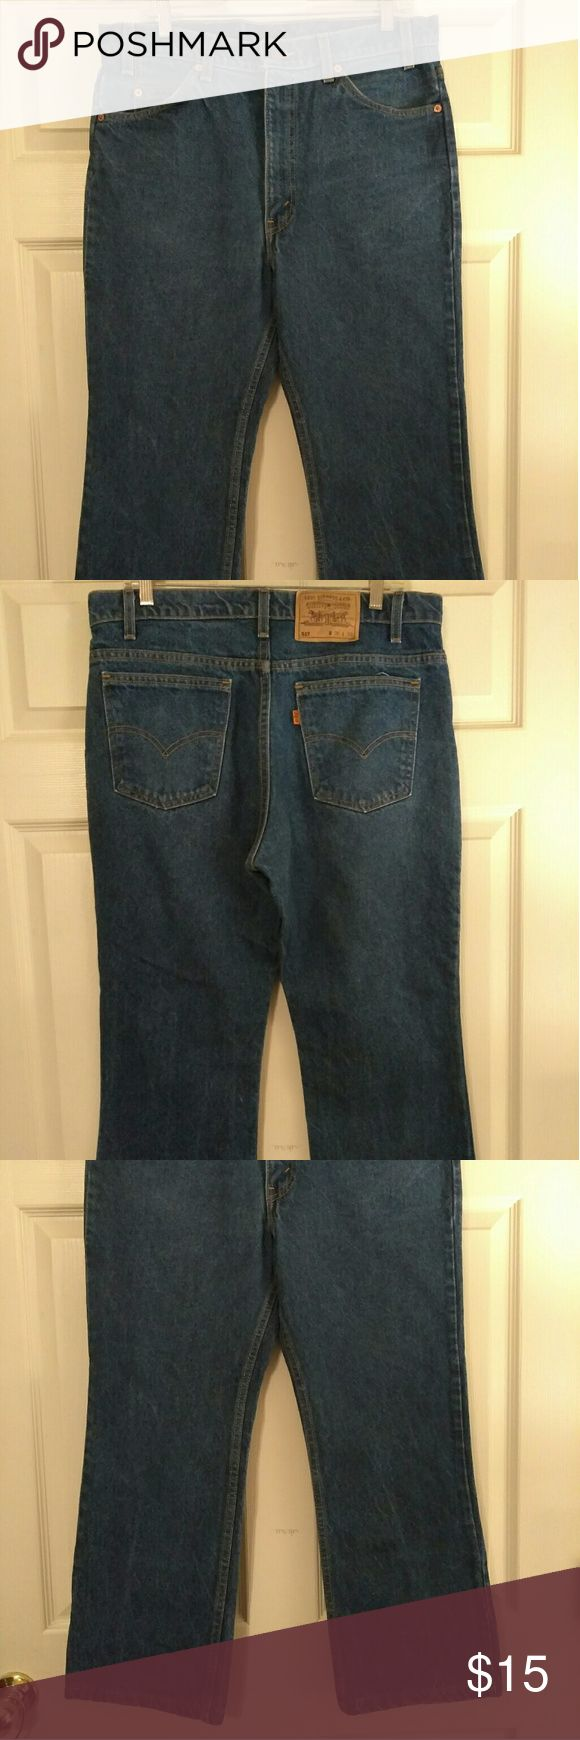 LEVIS 517 JEANS SZ. 36X30 Excellent condition. Waist 36 and 30 length Levi's Jeans Relaxed